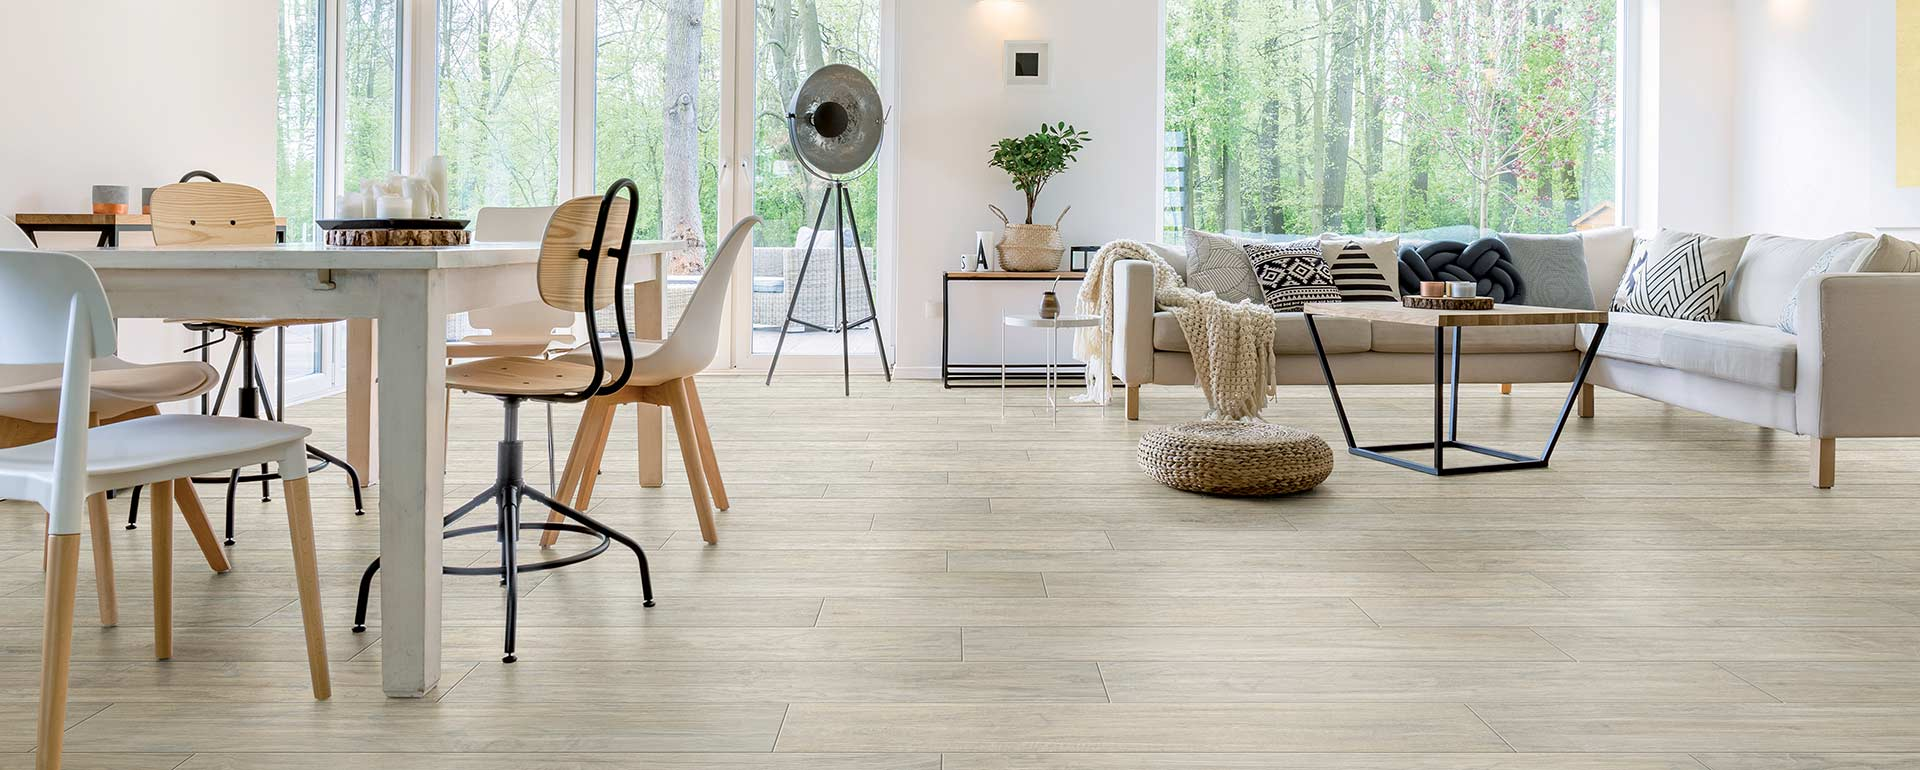 Full Circle ceramics Yosemite Wood Effect Tile - Shell, Natural Finish